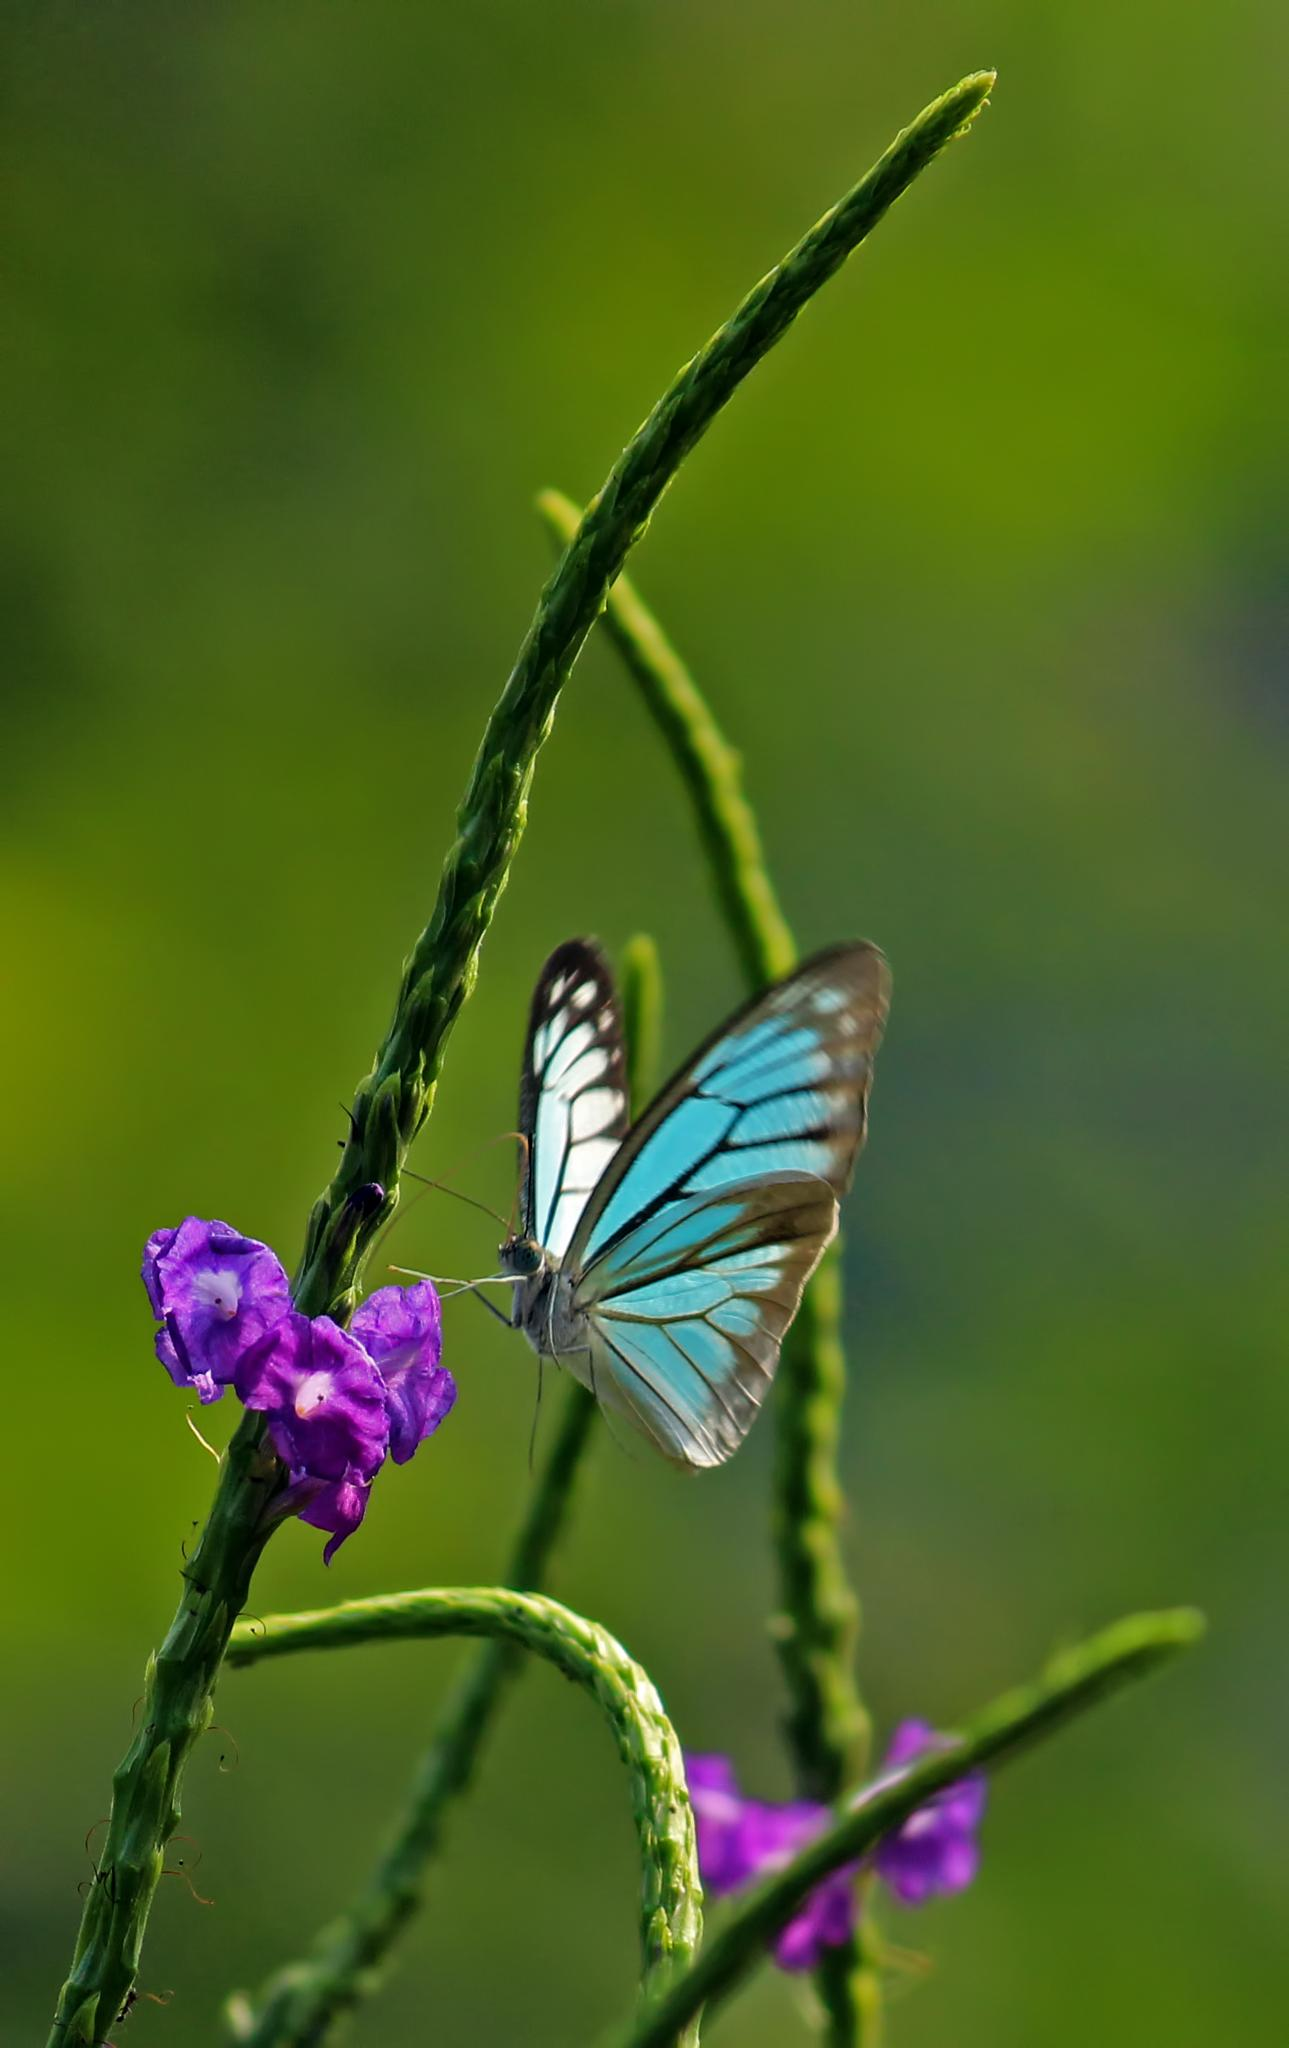 Blue winged butterfly by Karthik Easvur